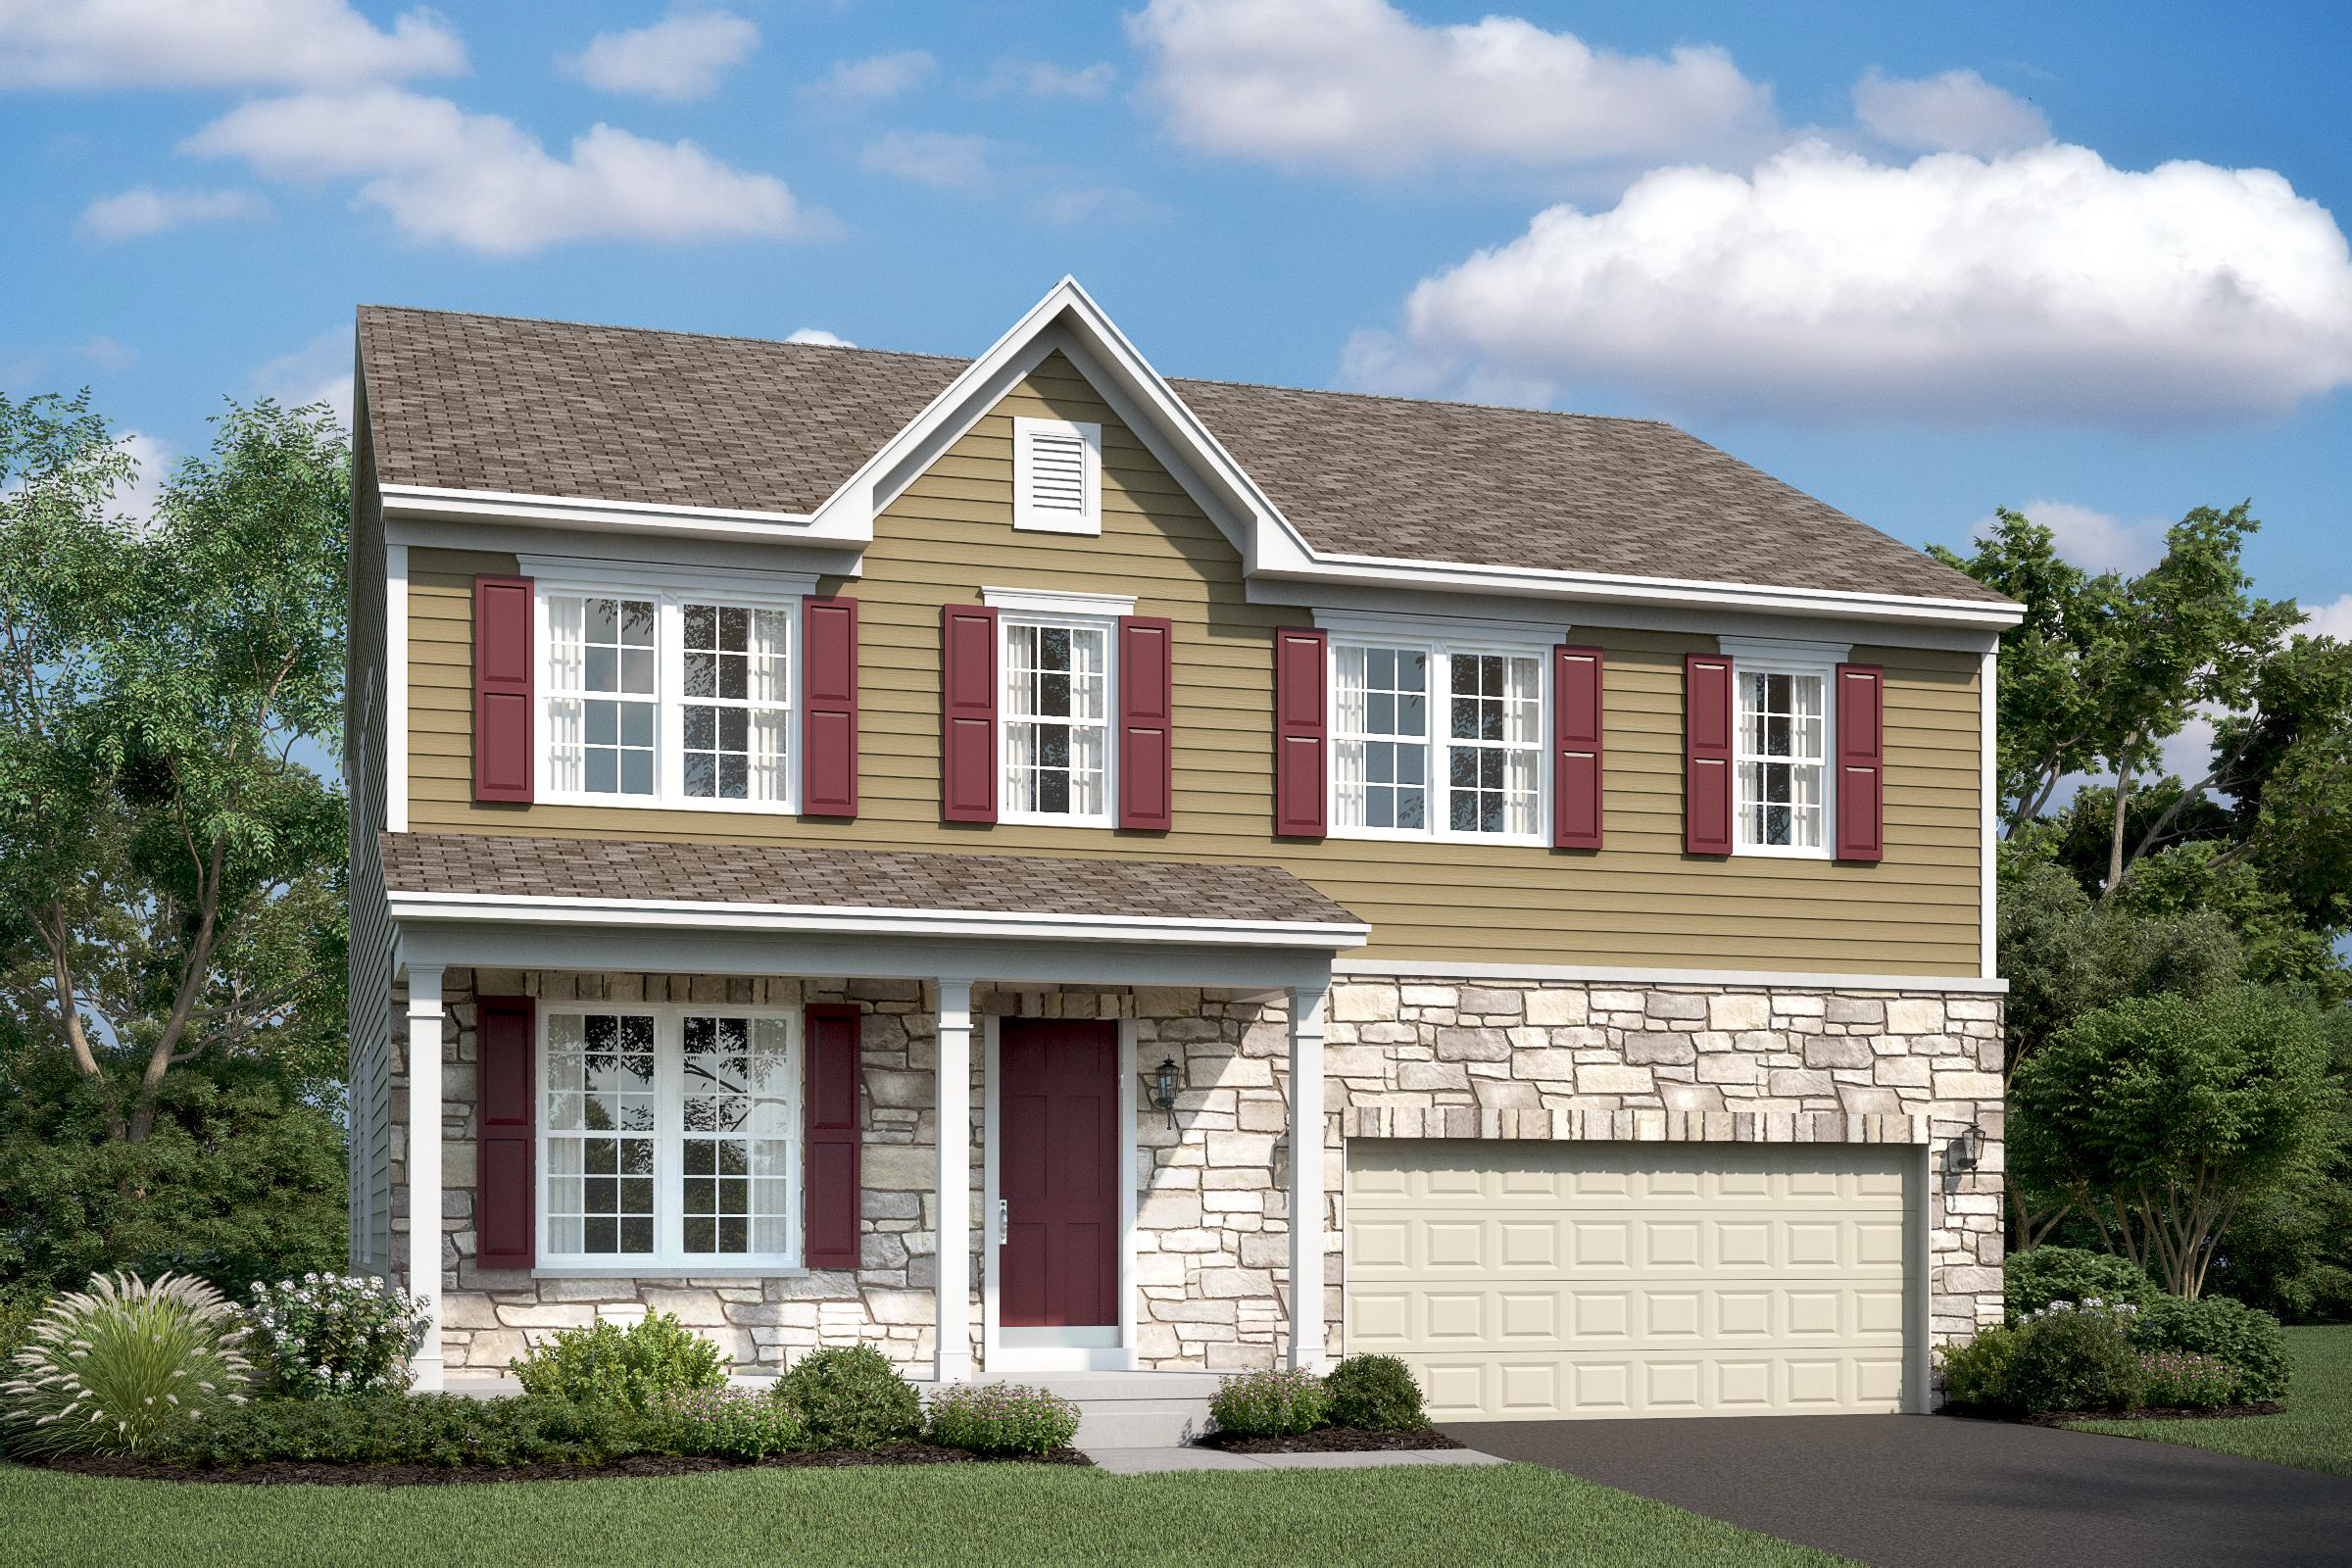 tomasen ct new homes at leeland station in virginia